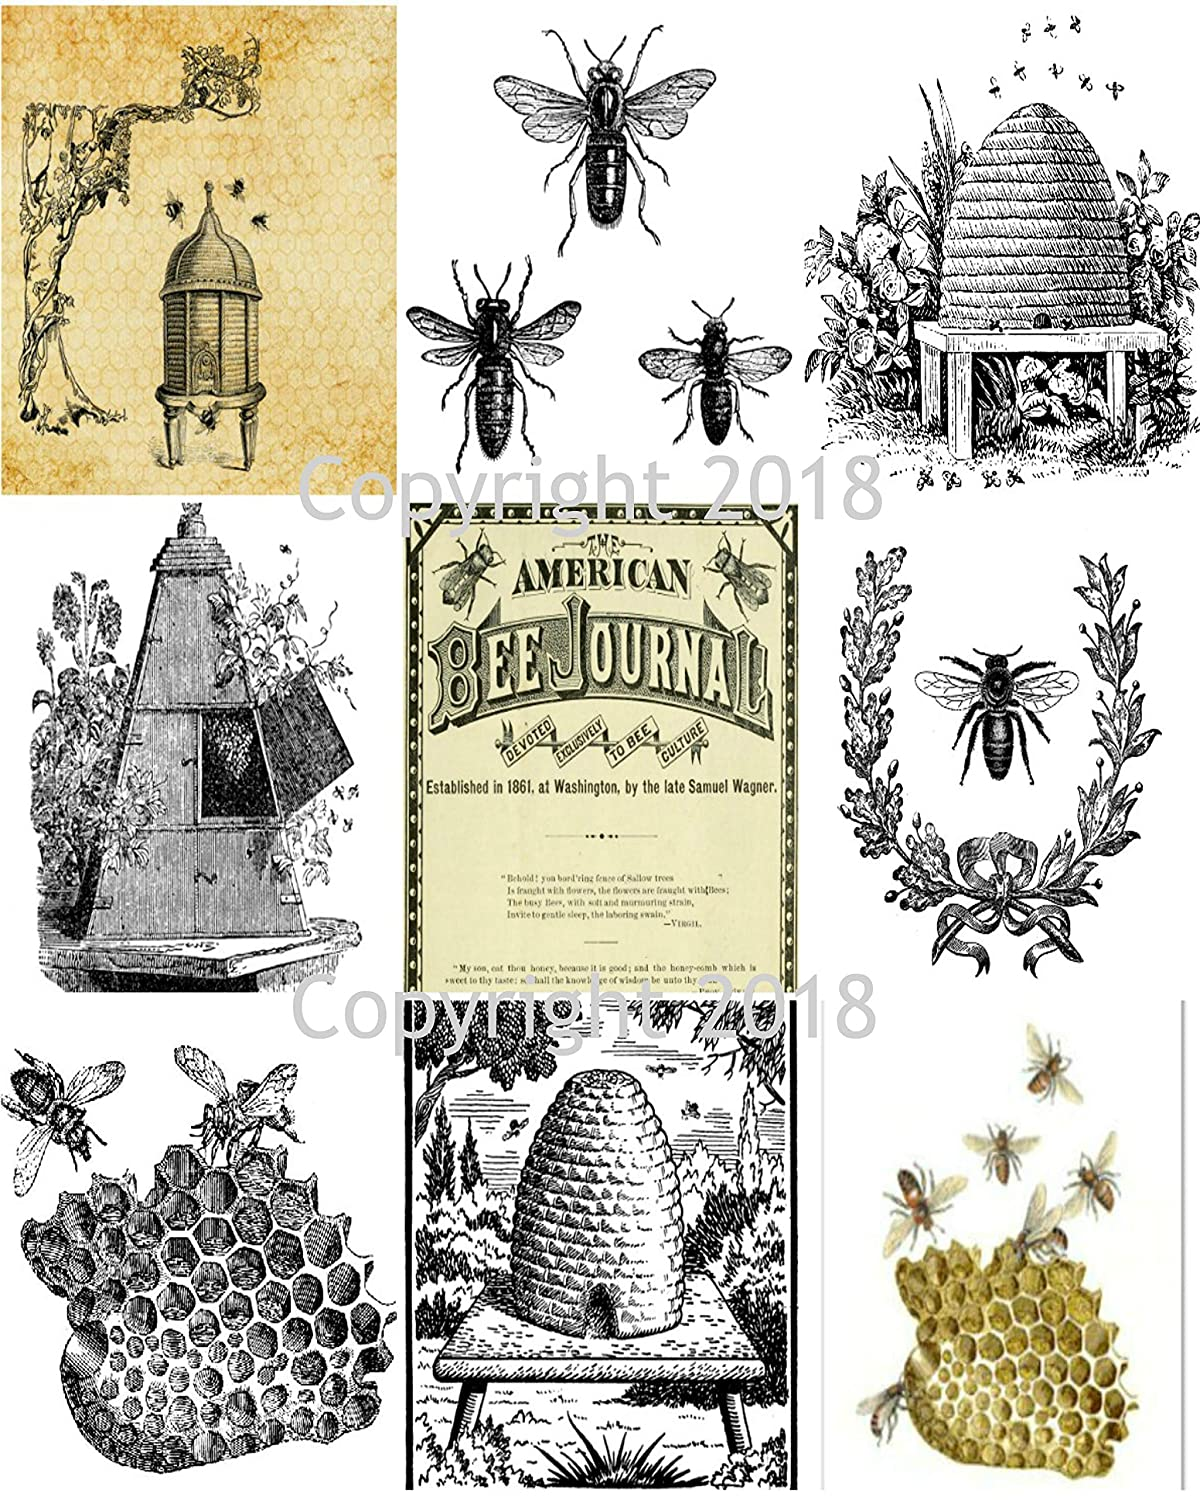 Printed Bees and Hives Collage Sheet 8.5 x 11 Printed Sheet Scrapbook and Card Making Supplies Autumn Cards Collage Sheet